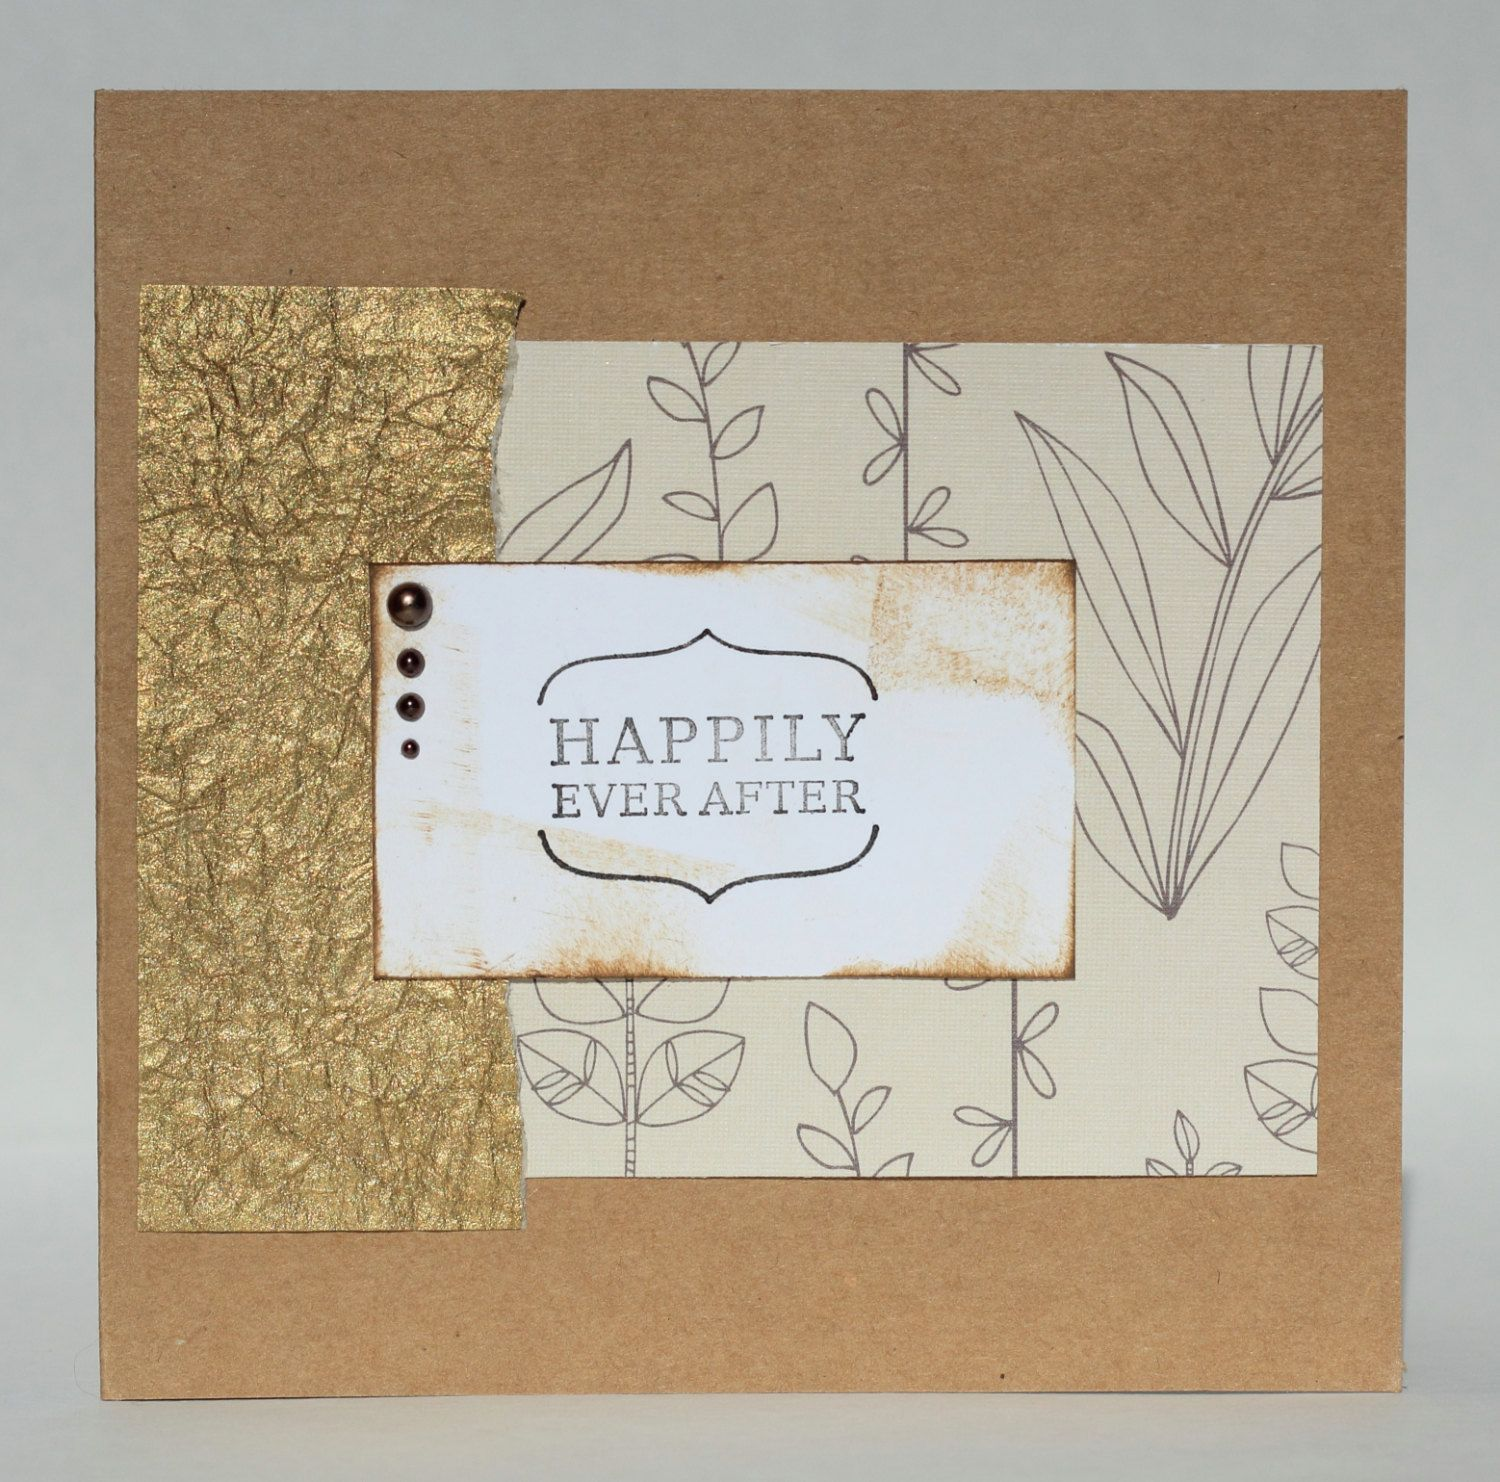 Happily ever after wedding card congrats congratulations happily ever after wedding card congrats congratulations greeting card card kristyandbryce Choice Image